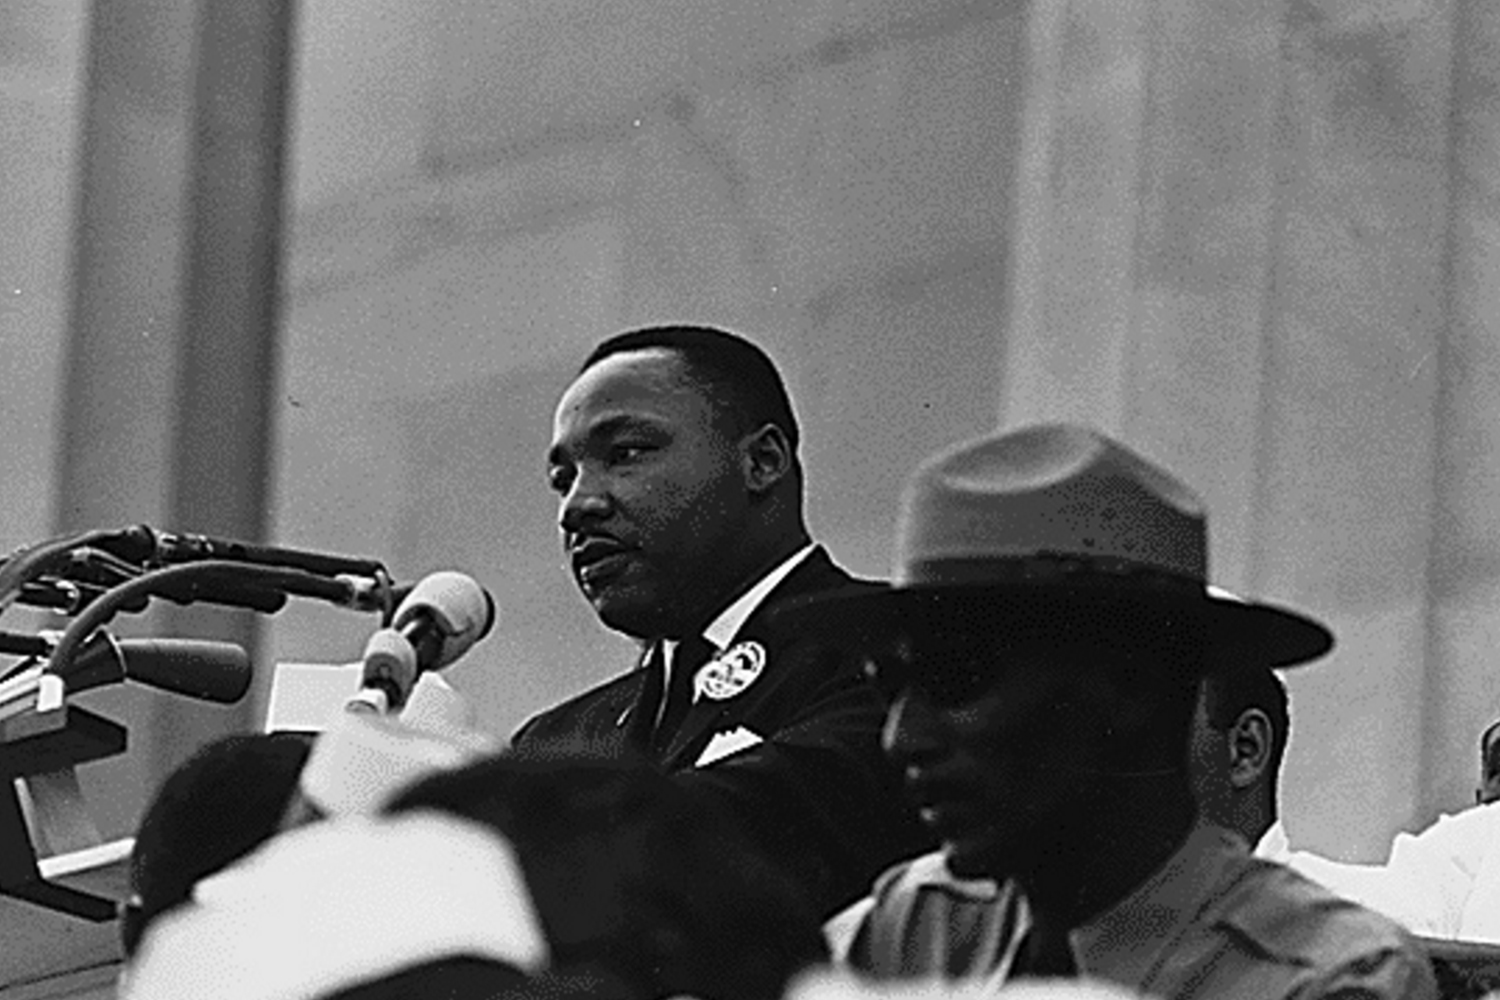 Standing in front of the Lincoln Memorial in Washington, D.C. on August 28, 1963, delivered his